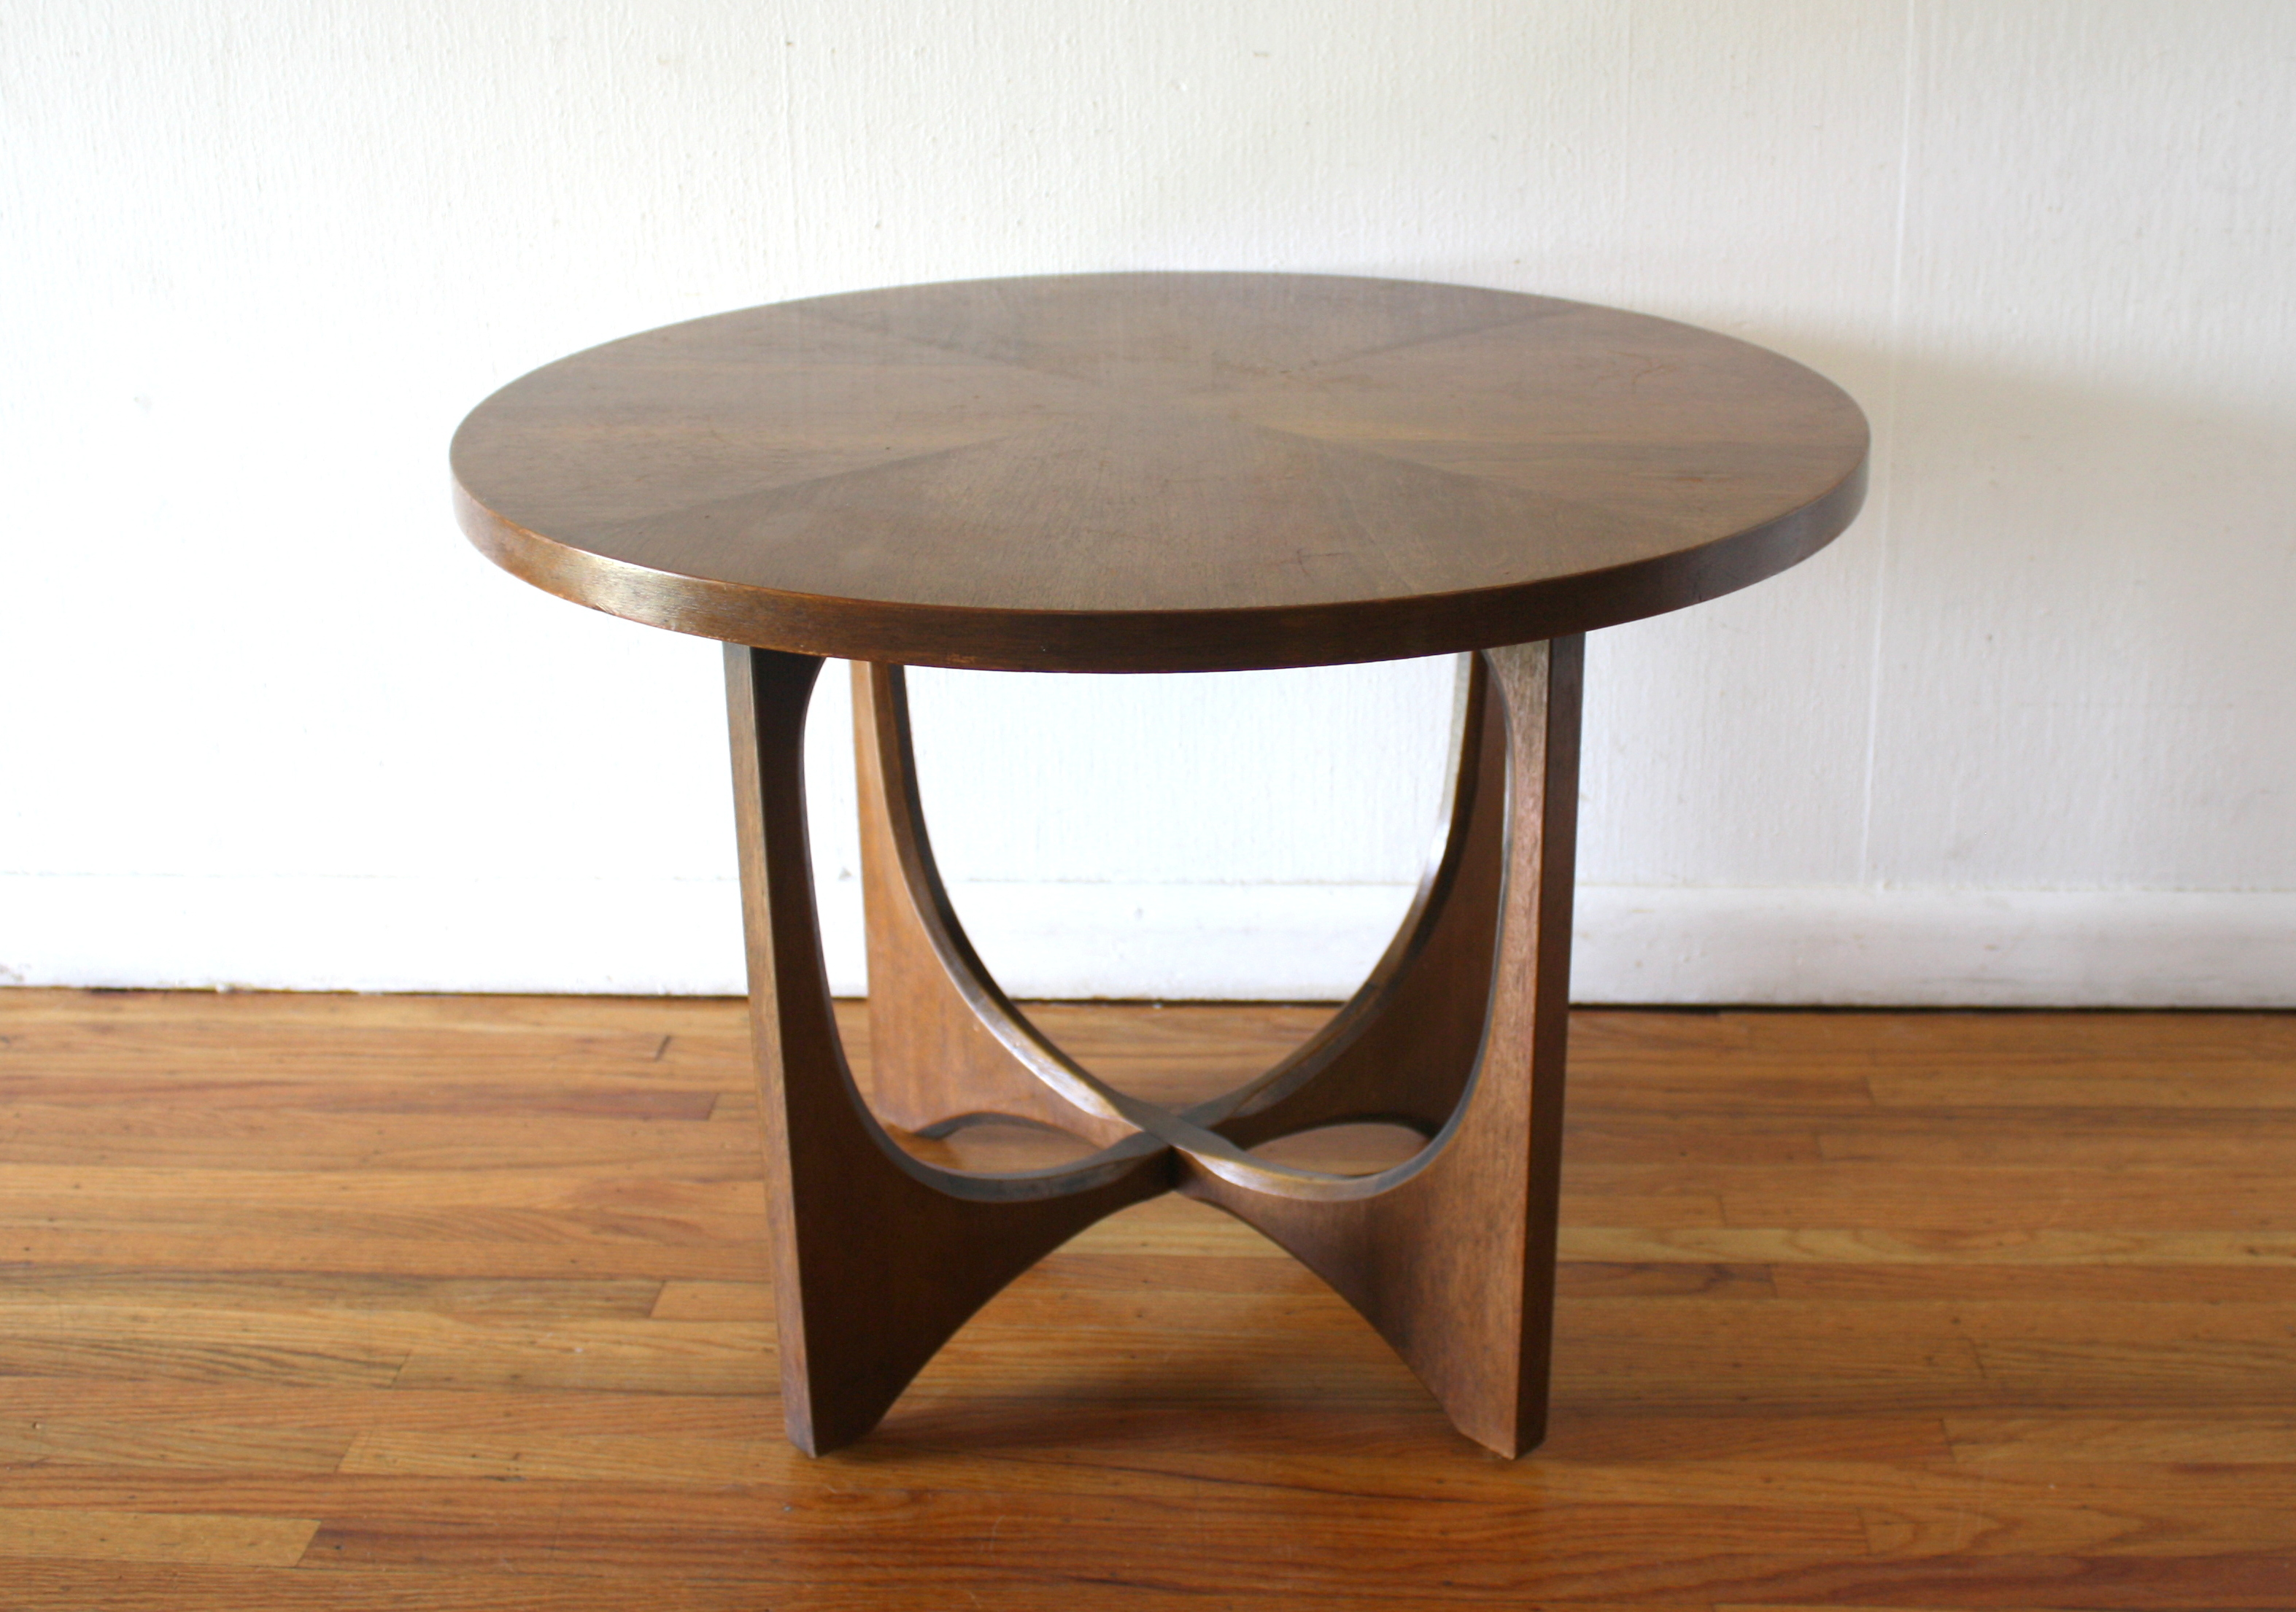 broyhill brasilia round side end table ked vintage tables wrought iron living room ashley porter magnolia market farmhouse ethan allen corner desk long thin cottage furniture